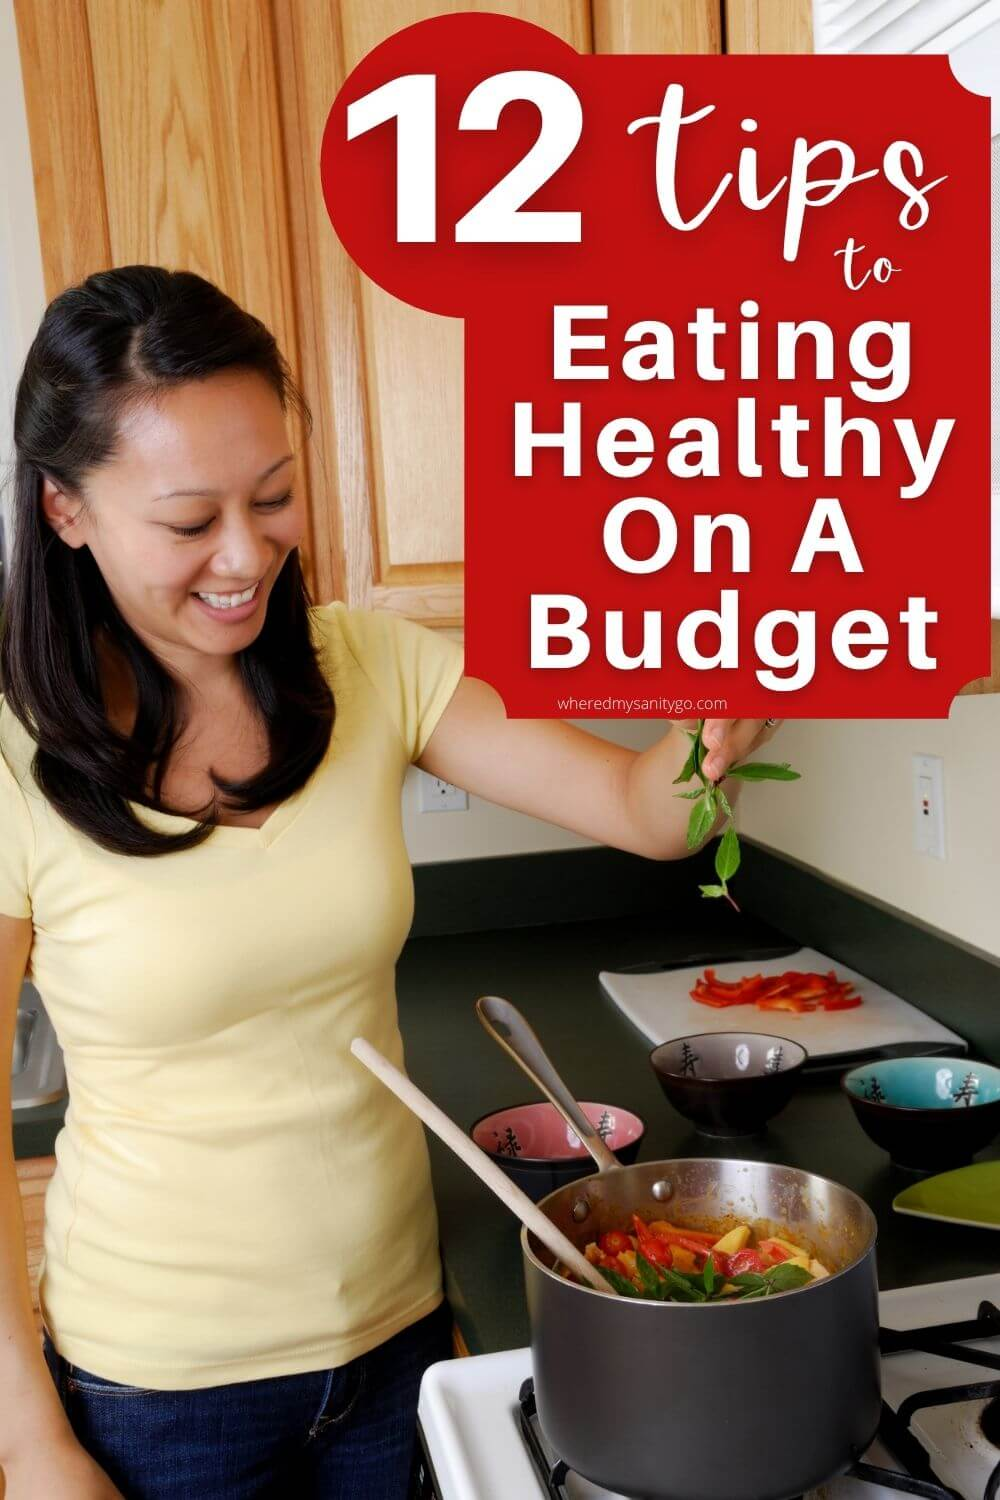 12 Tips to Eating Healthy On A Budget